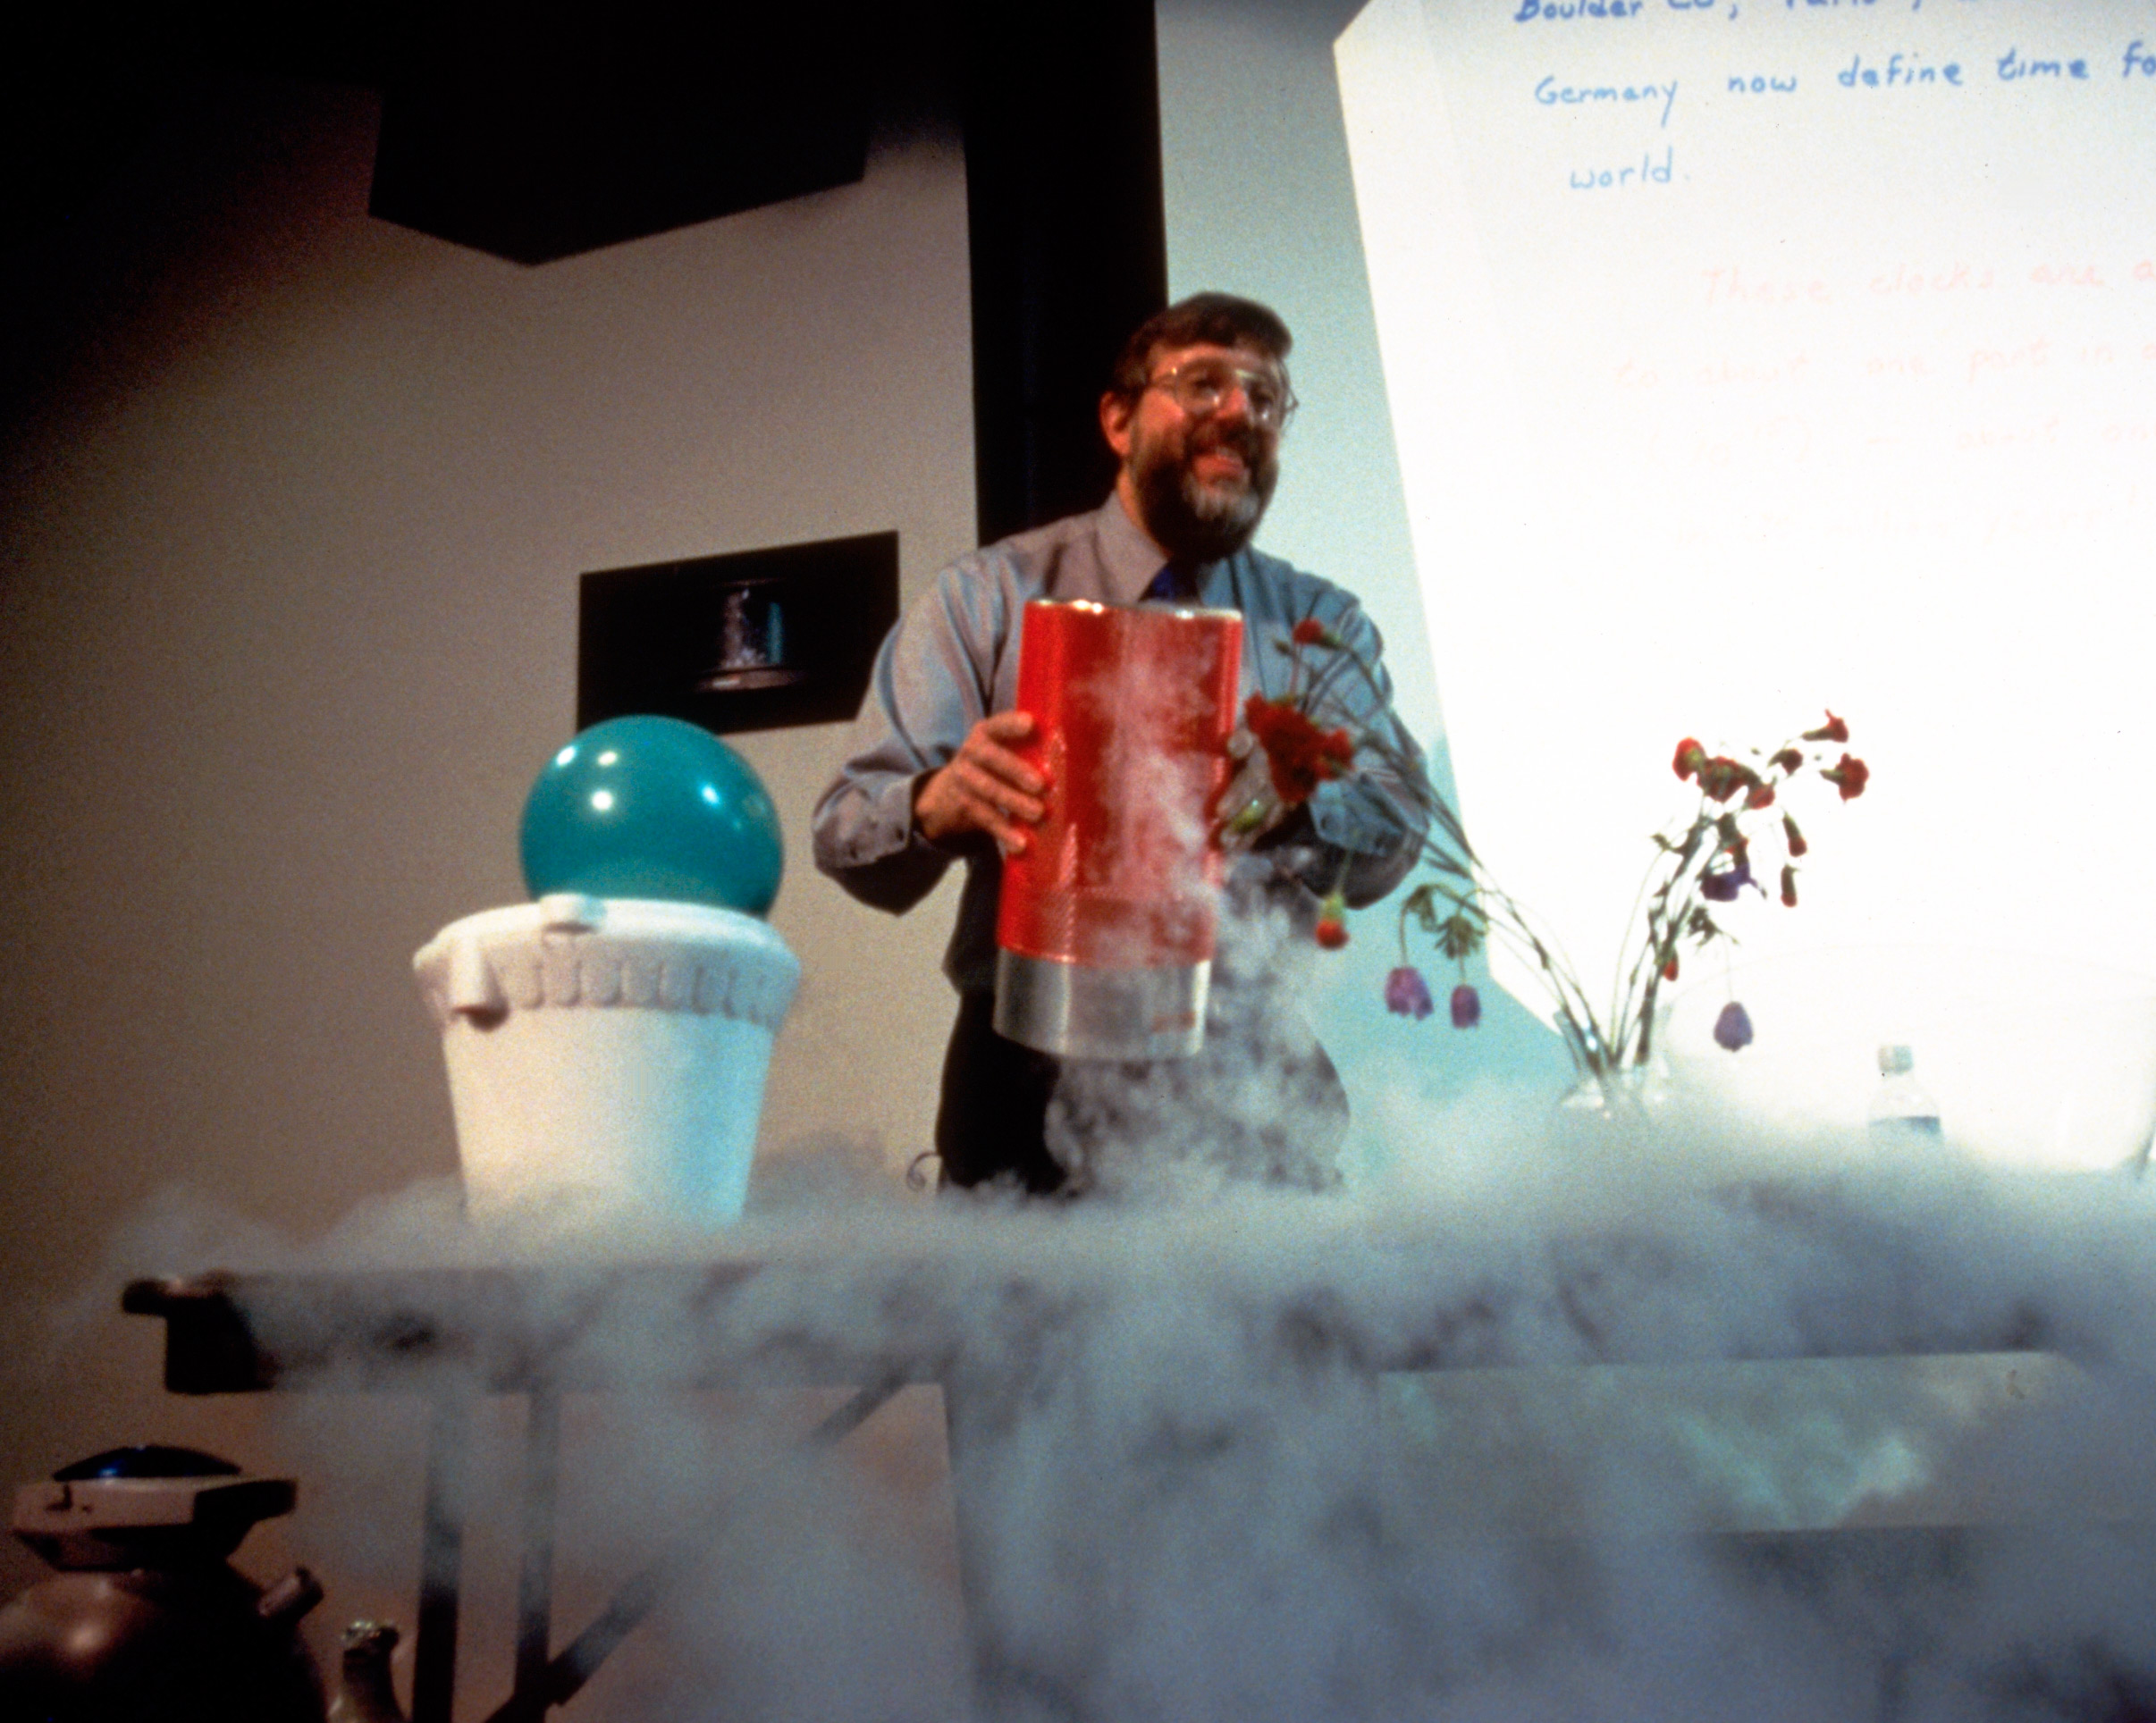 Image of William Phillips with fog from liquid nitrogen